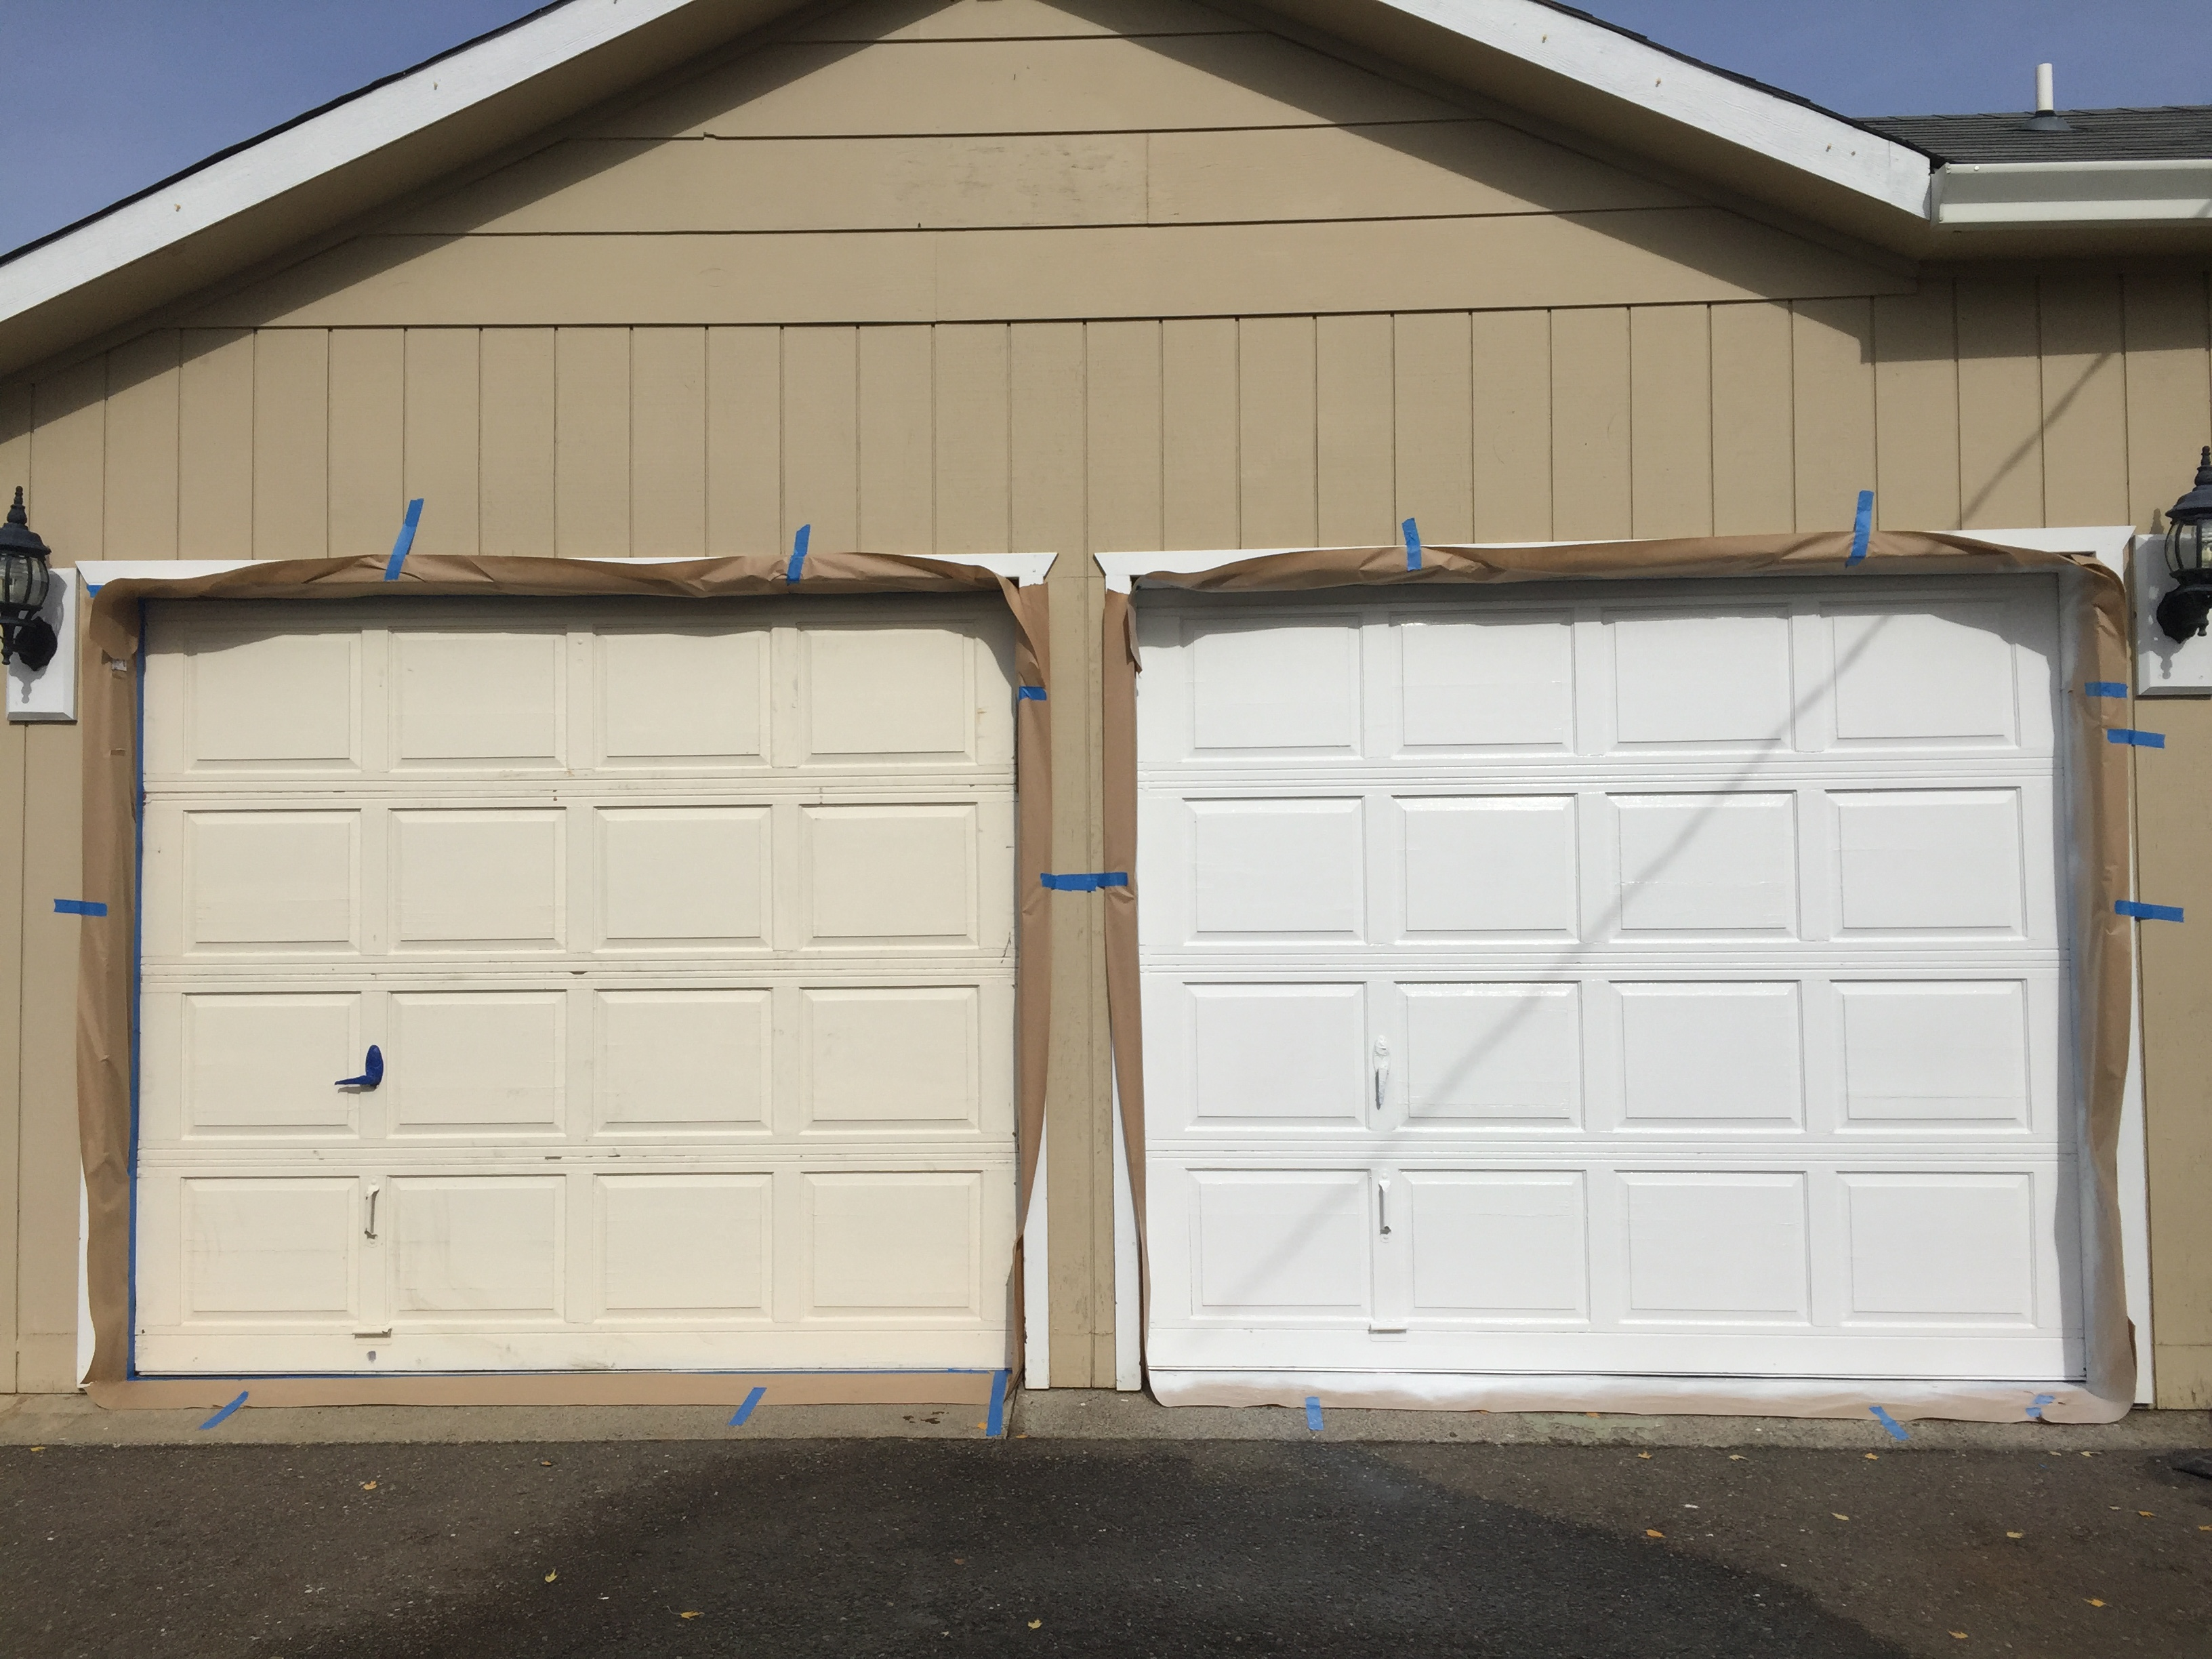 One of the things Jesse did in Oregon was install and paint new garage doors.